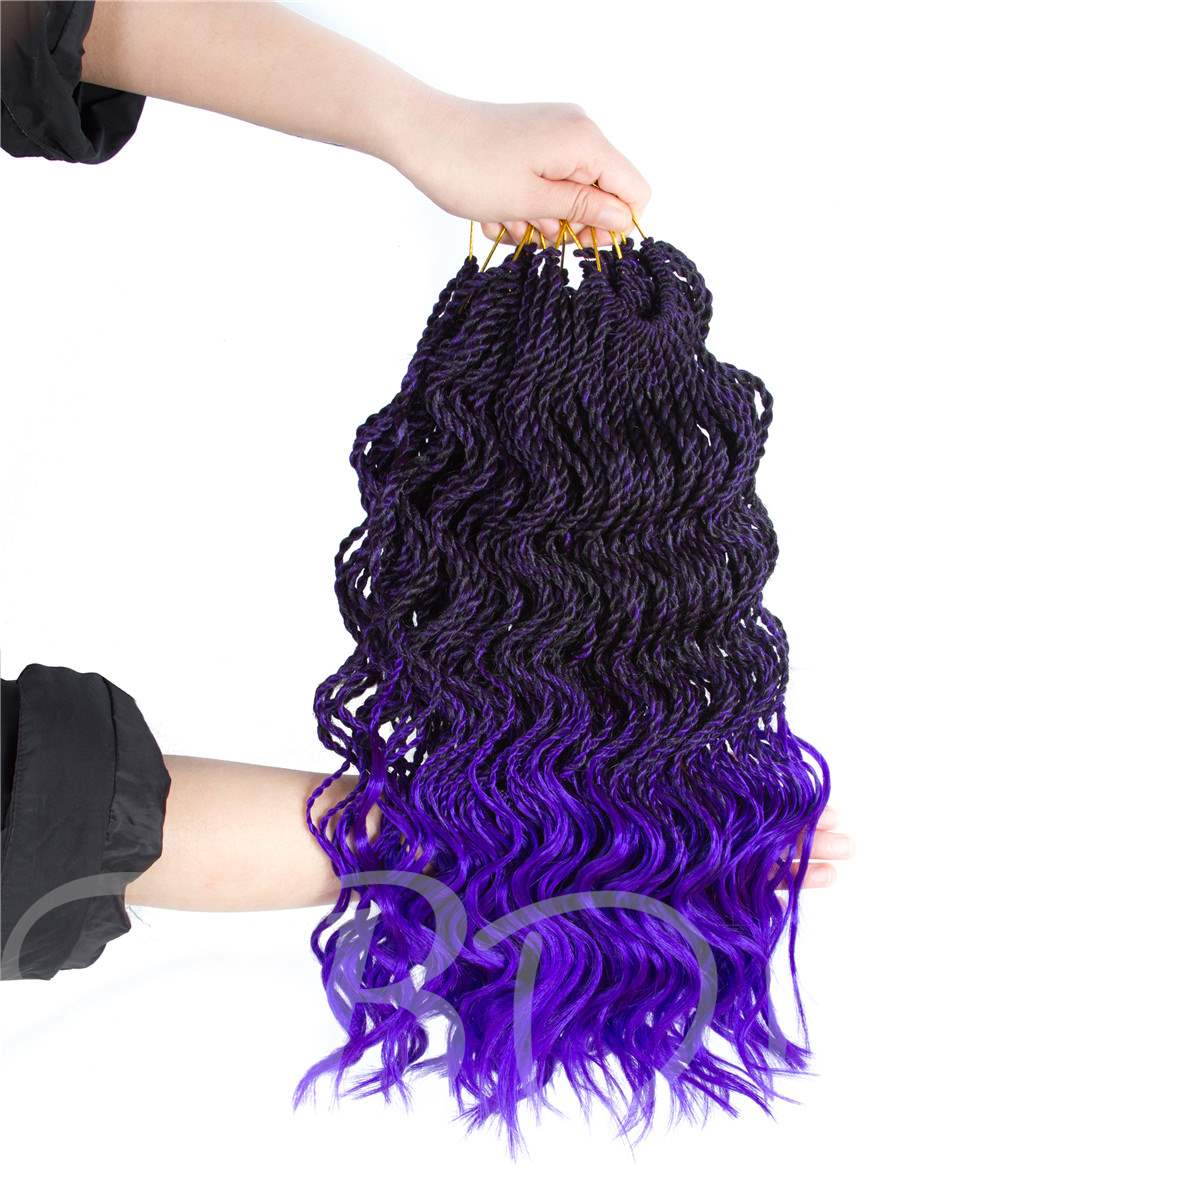 Curly Senegalese Twist Crochet Hair Extension Synthetic Braiding Hair 18 Inches